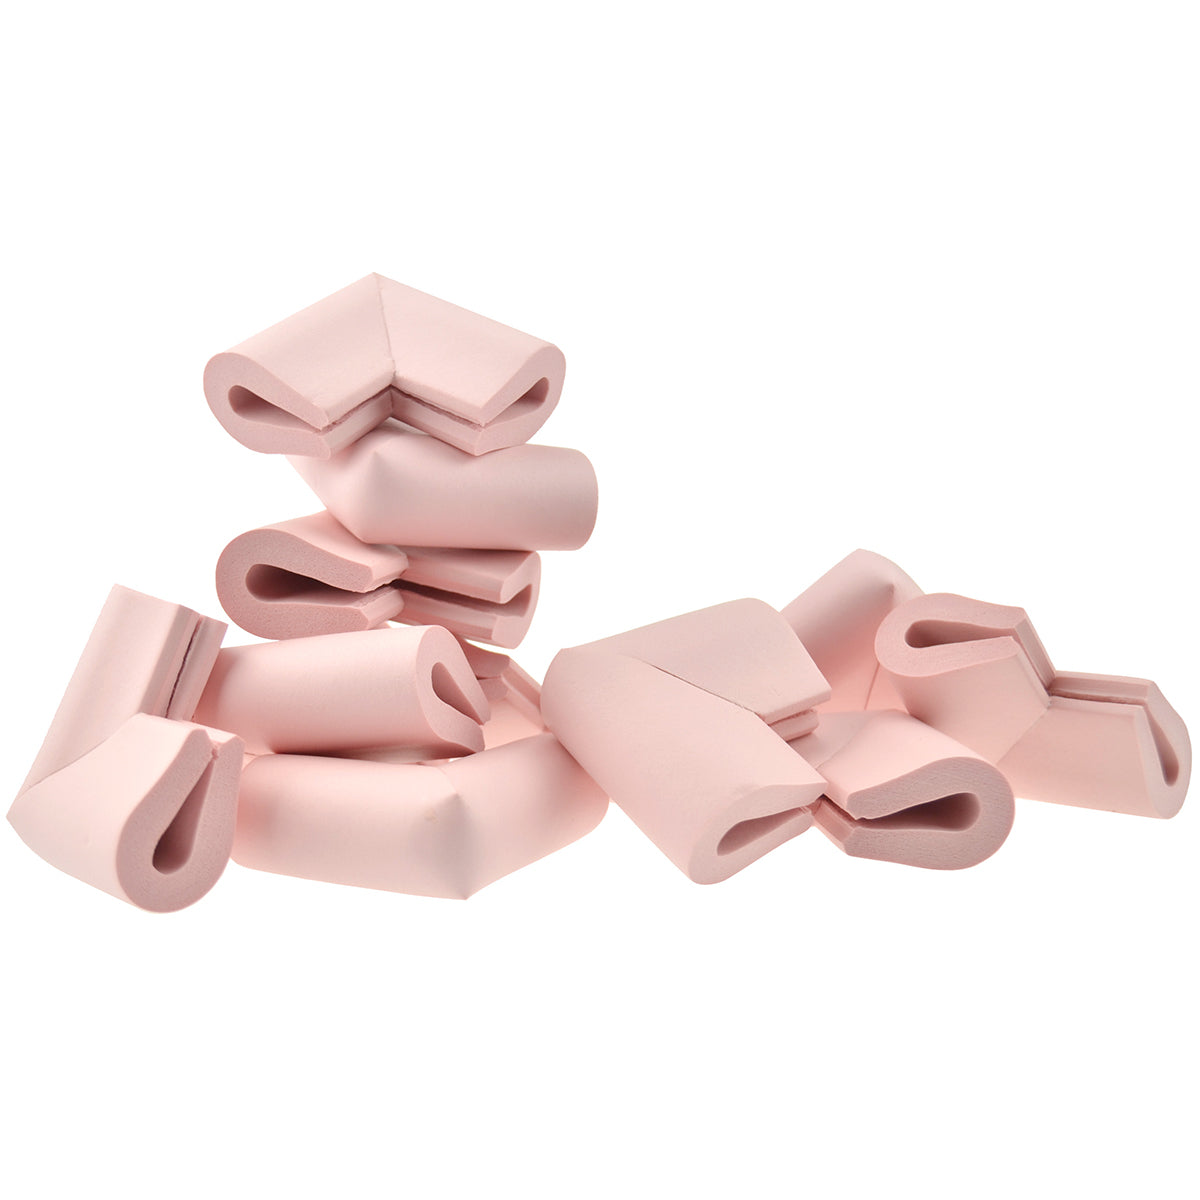 12 pieces randomly placed pink u-shaped foam corner protectors show with a white background.